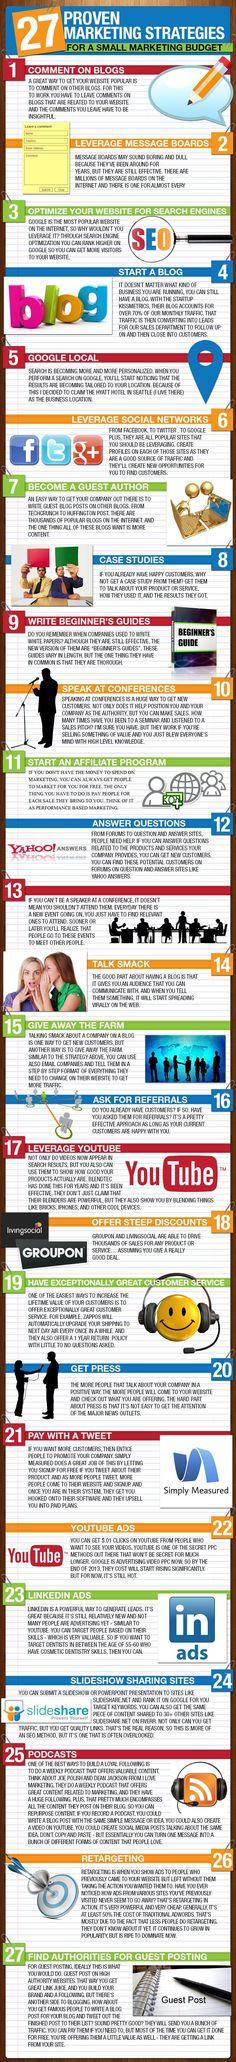 27 Proven Marketing Strategies To Double Your Traffic In Under 30 Days business infographic social media marketing promoting entrepreneur business tips entrepreneurship startups small business startup tips marketing tip marketing tips small buiness tips